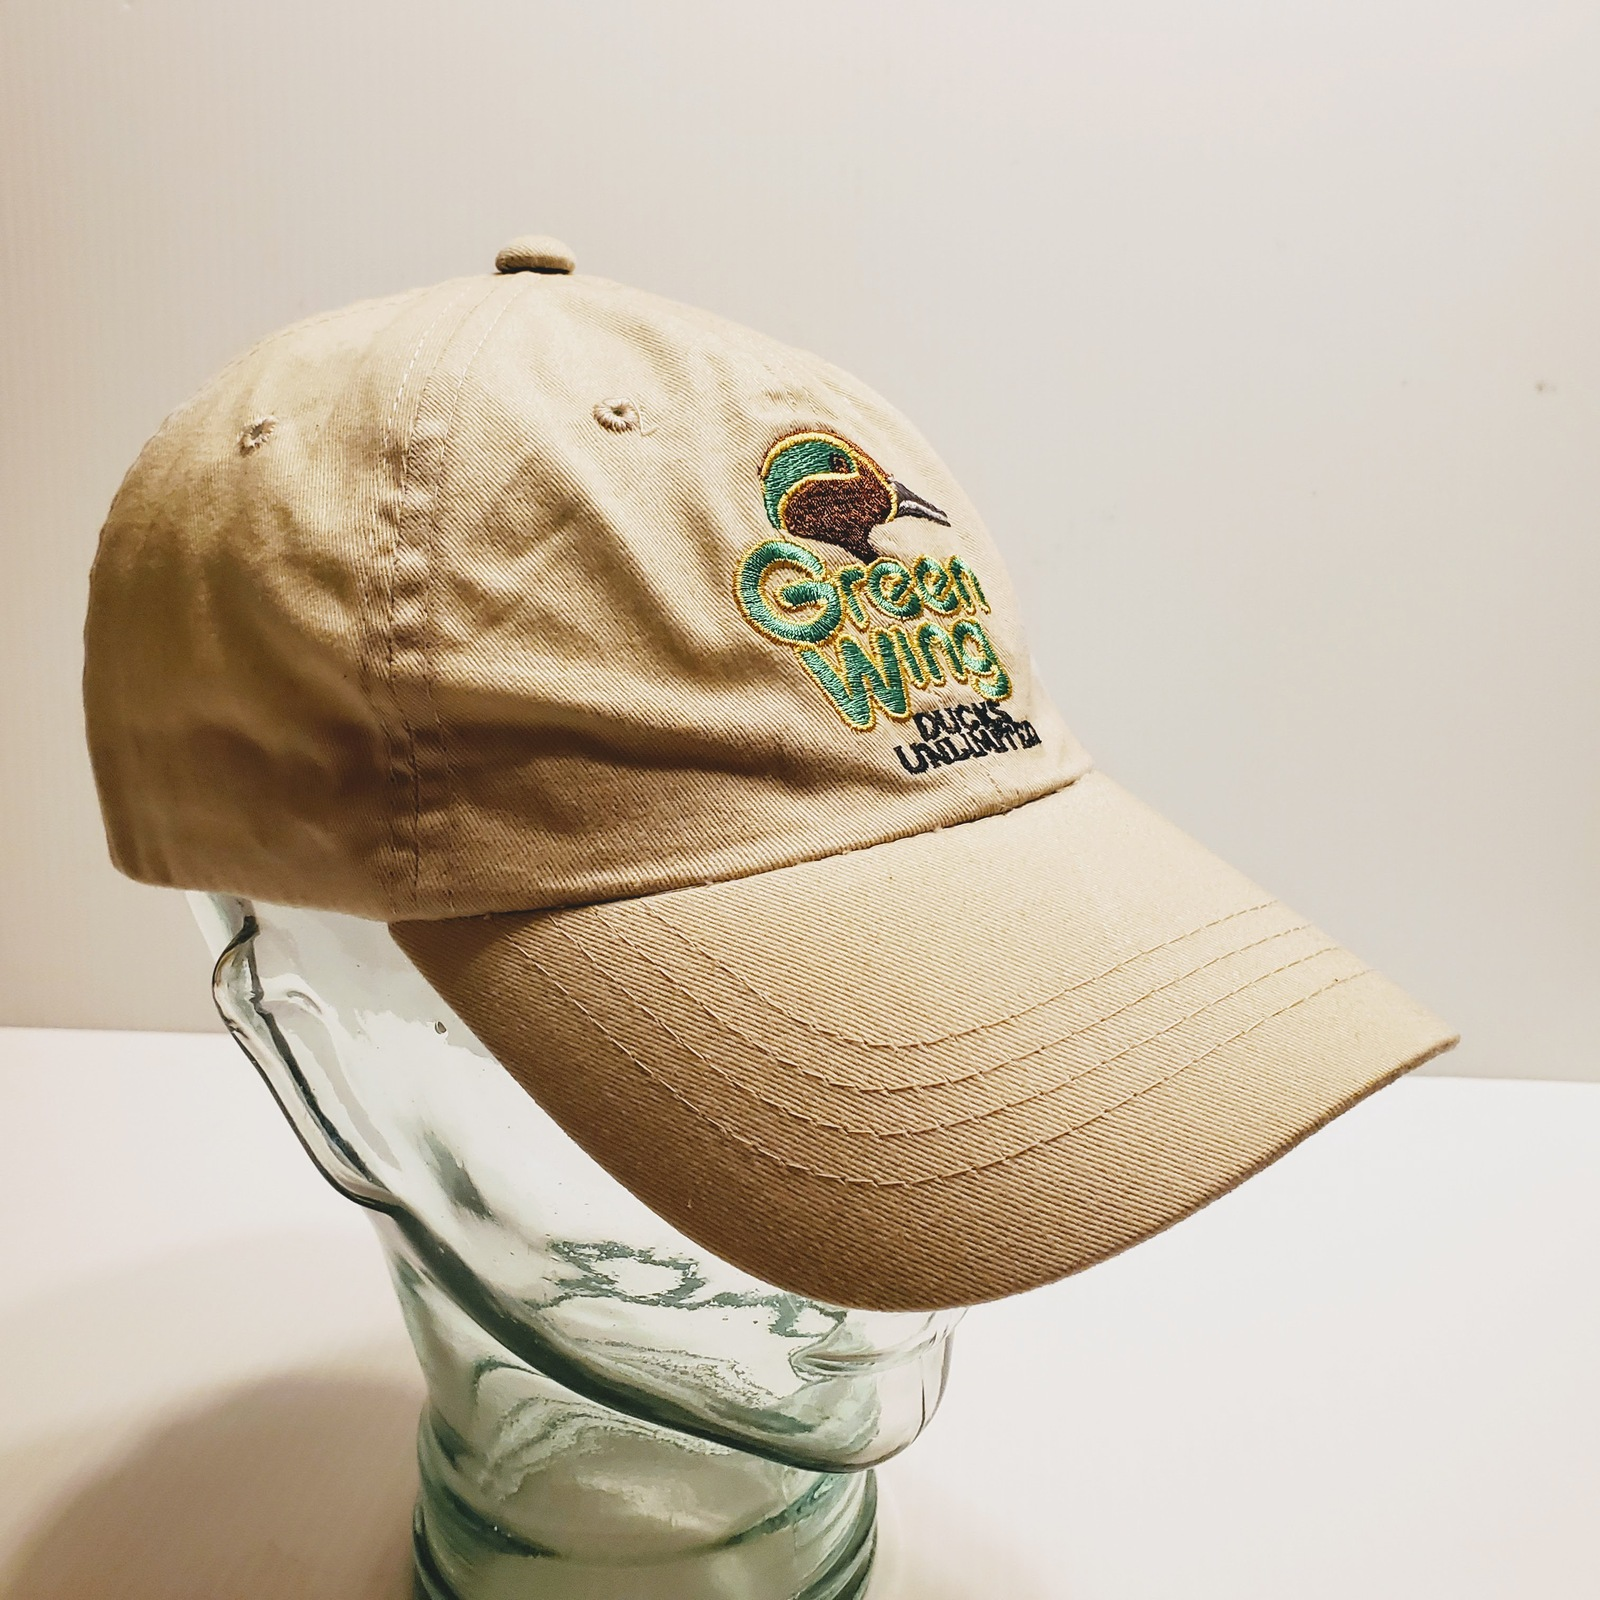 Green Wing Ducks Unlimited Adjustable Hat One Size Fits Most. Dorfman Pacific.   image 2